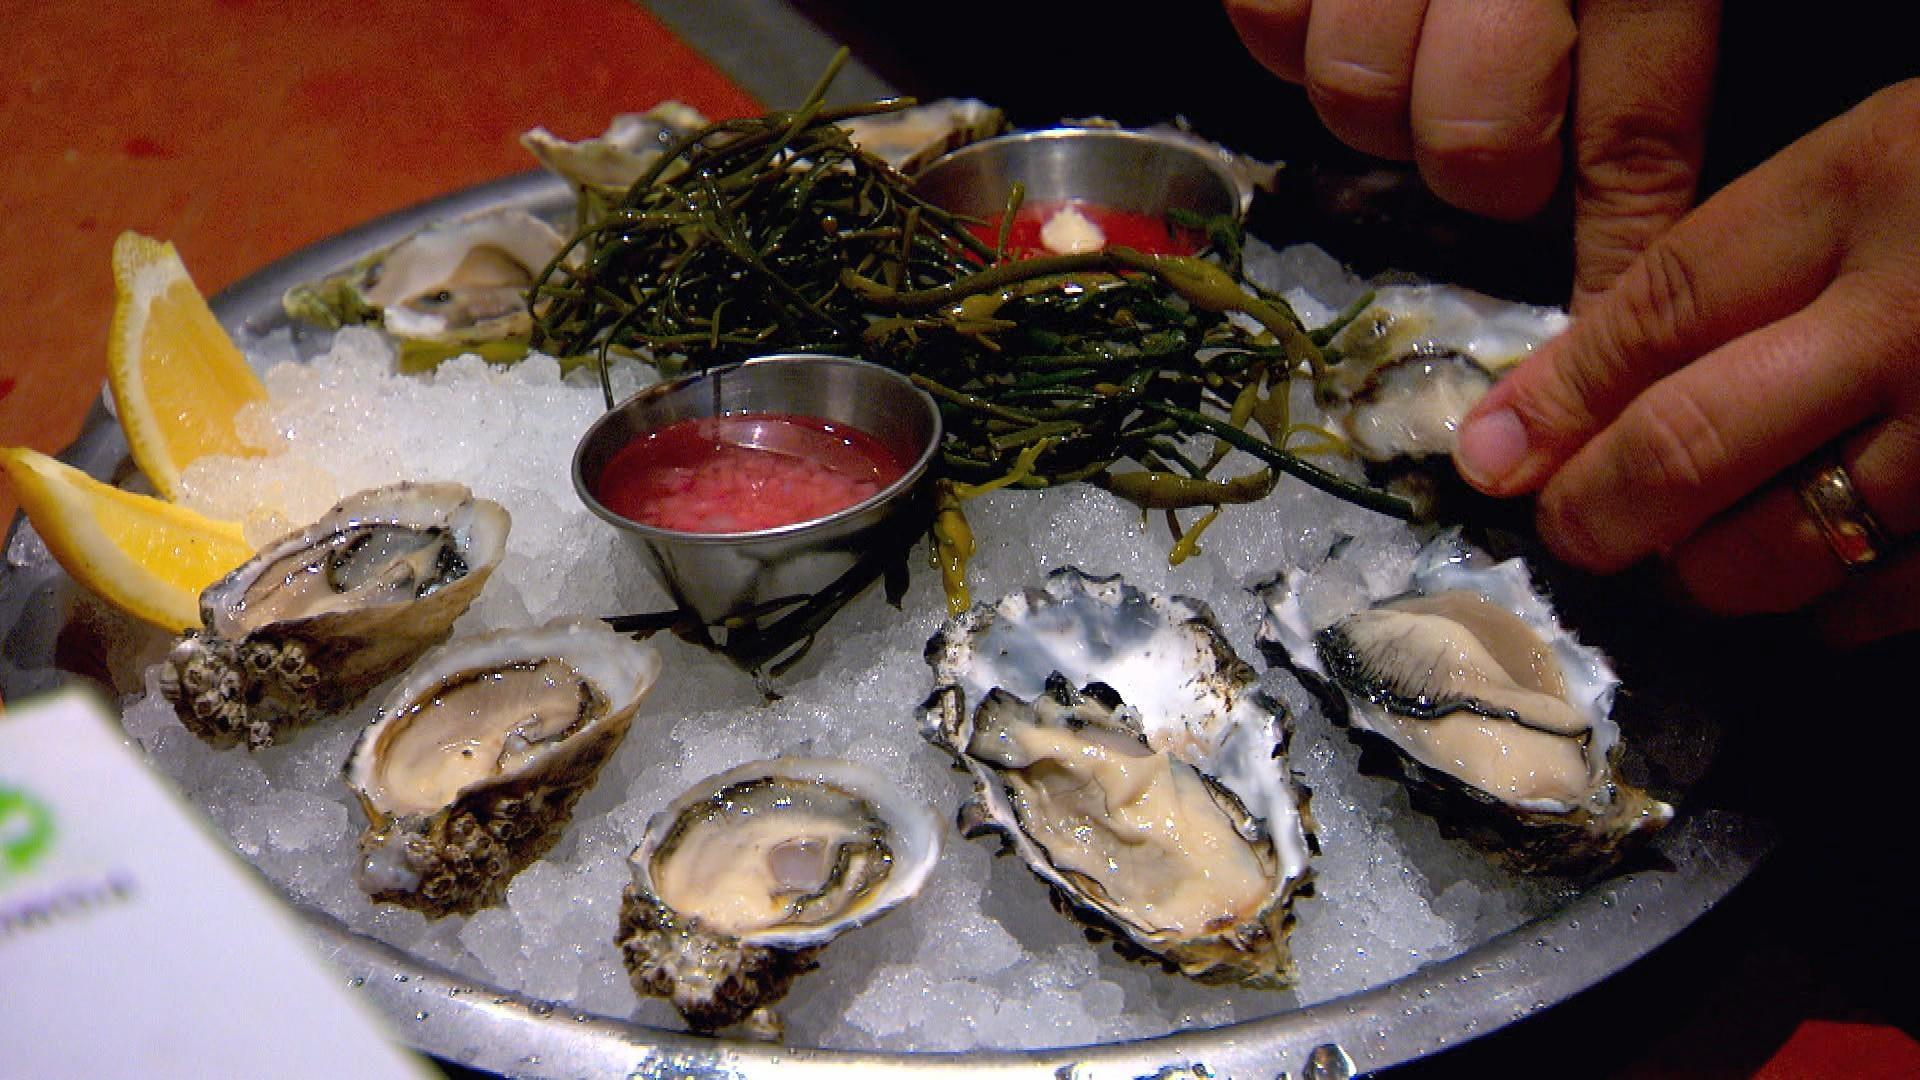 Netarts Bay is known for oyster cultivation. Oyster Meroir is the taste of place. Episode of Oregon Field Guide on November 5, 2015.